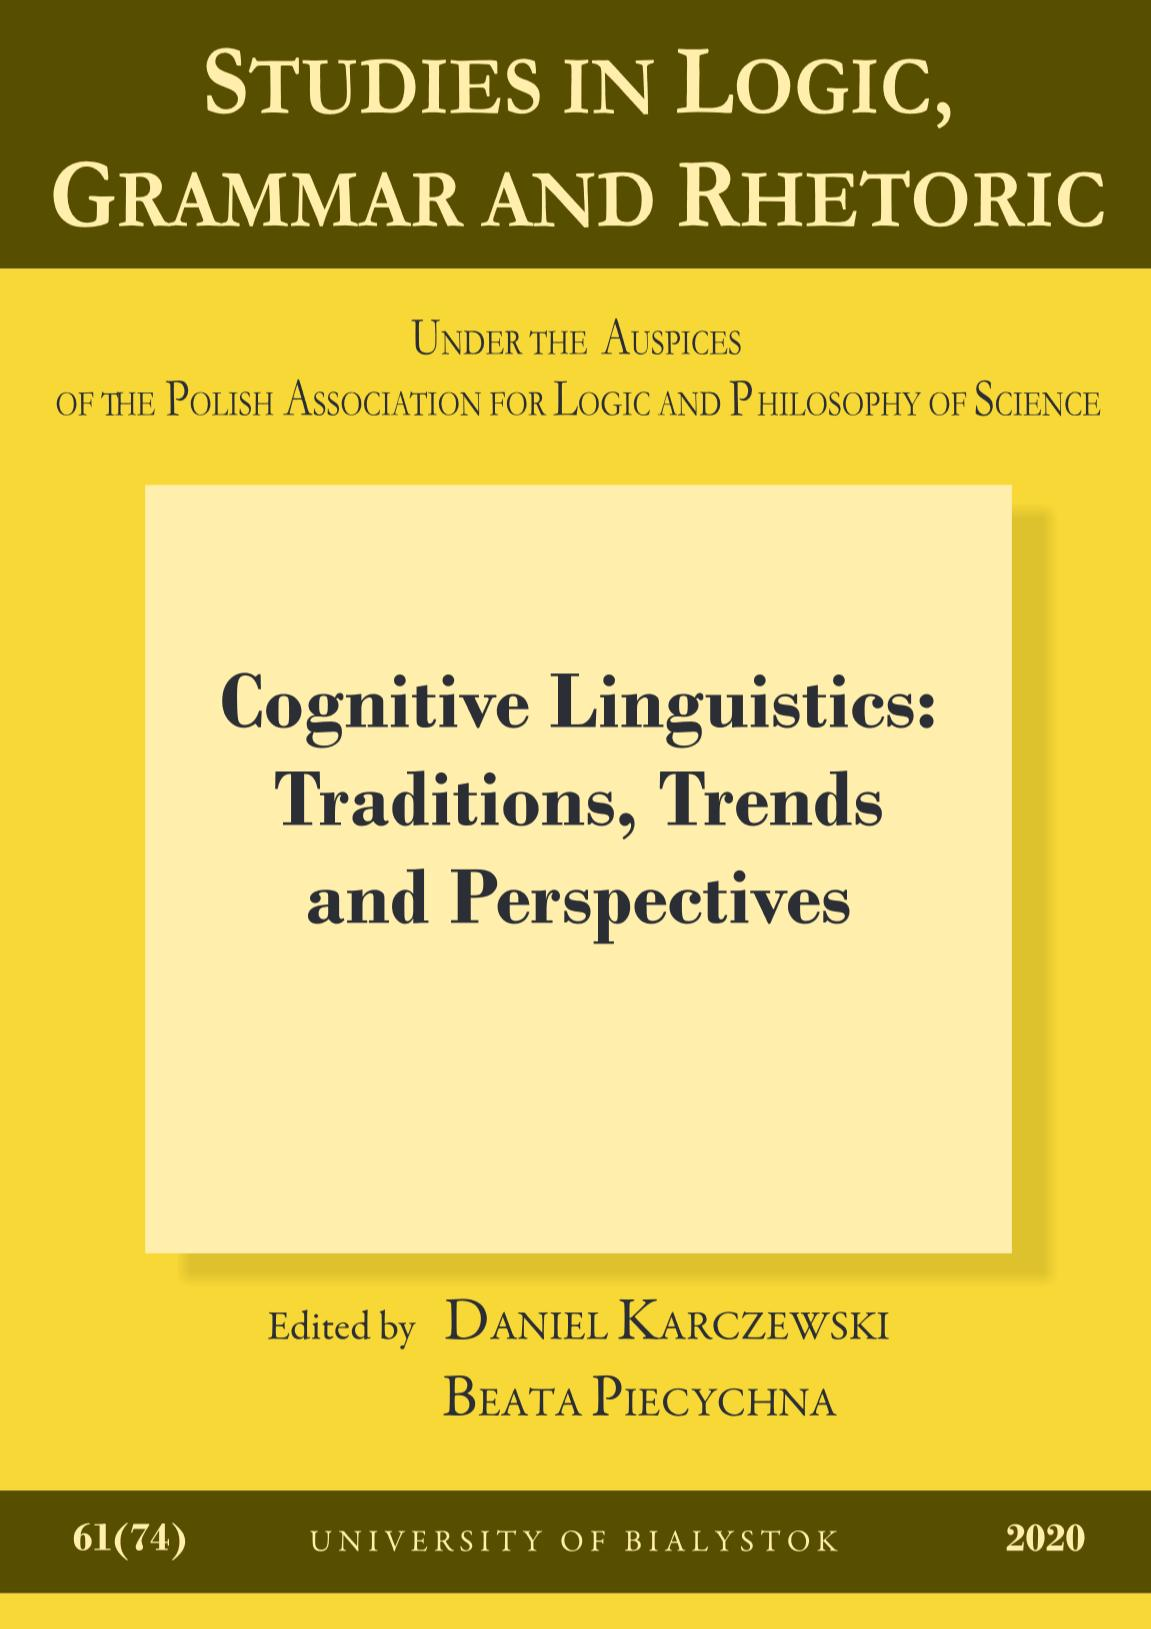 Cognitive Linguistics: Traditions, Trends and Perspectives